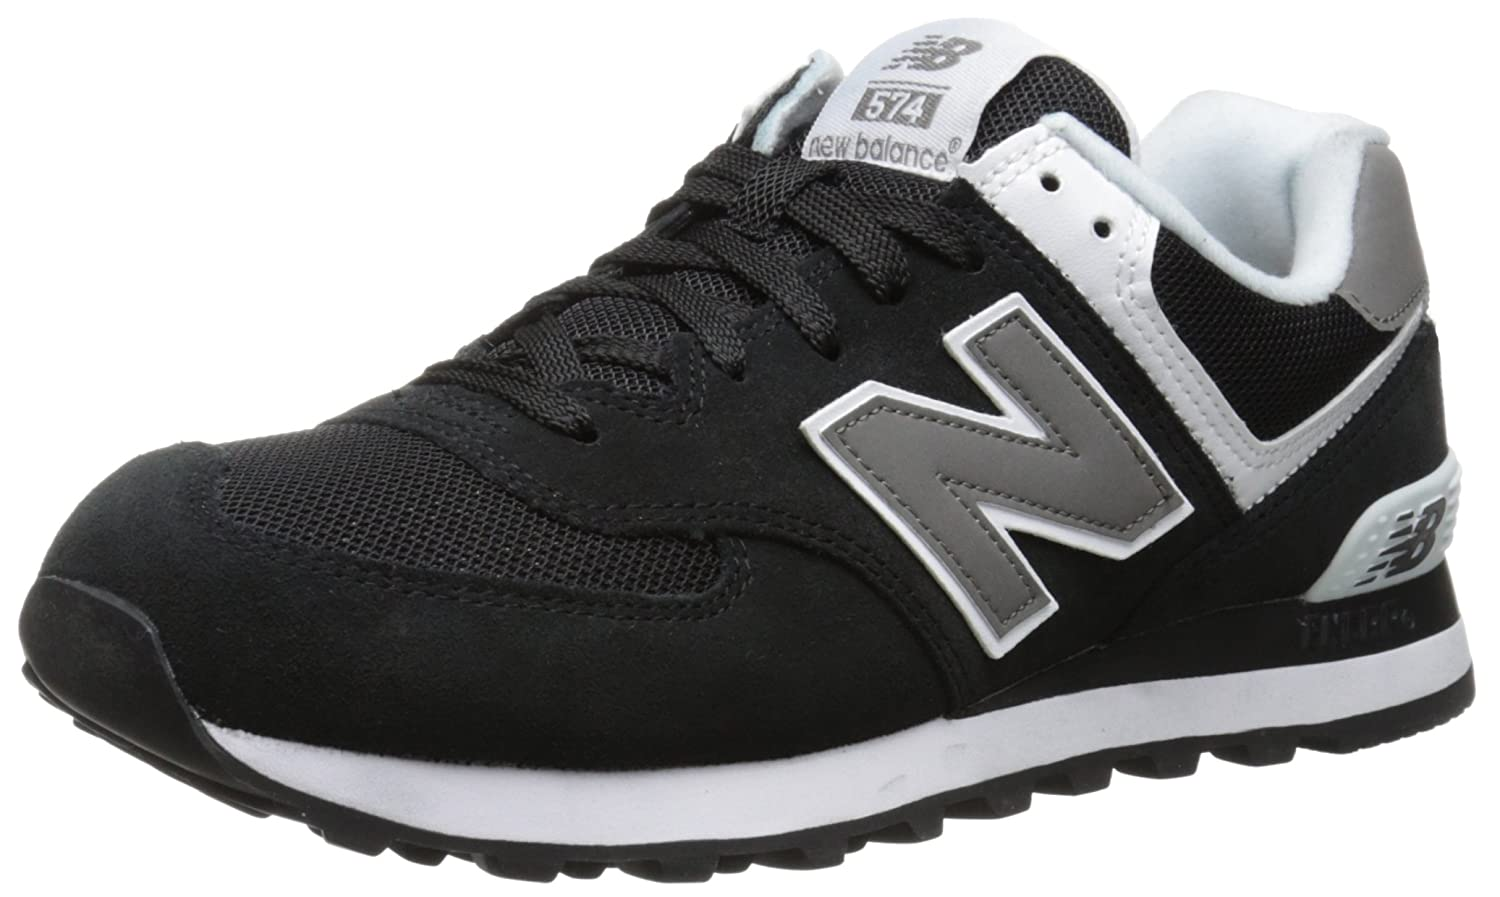 New Balance Mtv Trail Running Shoes